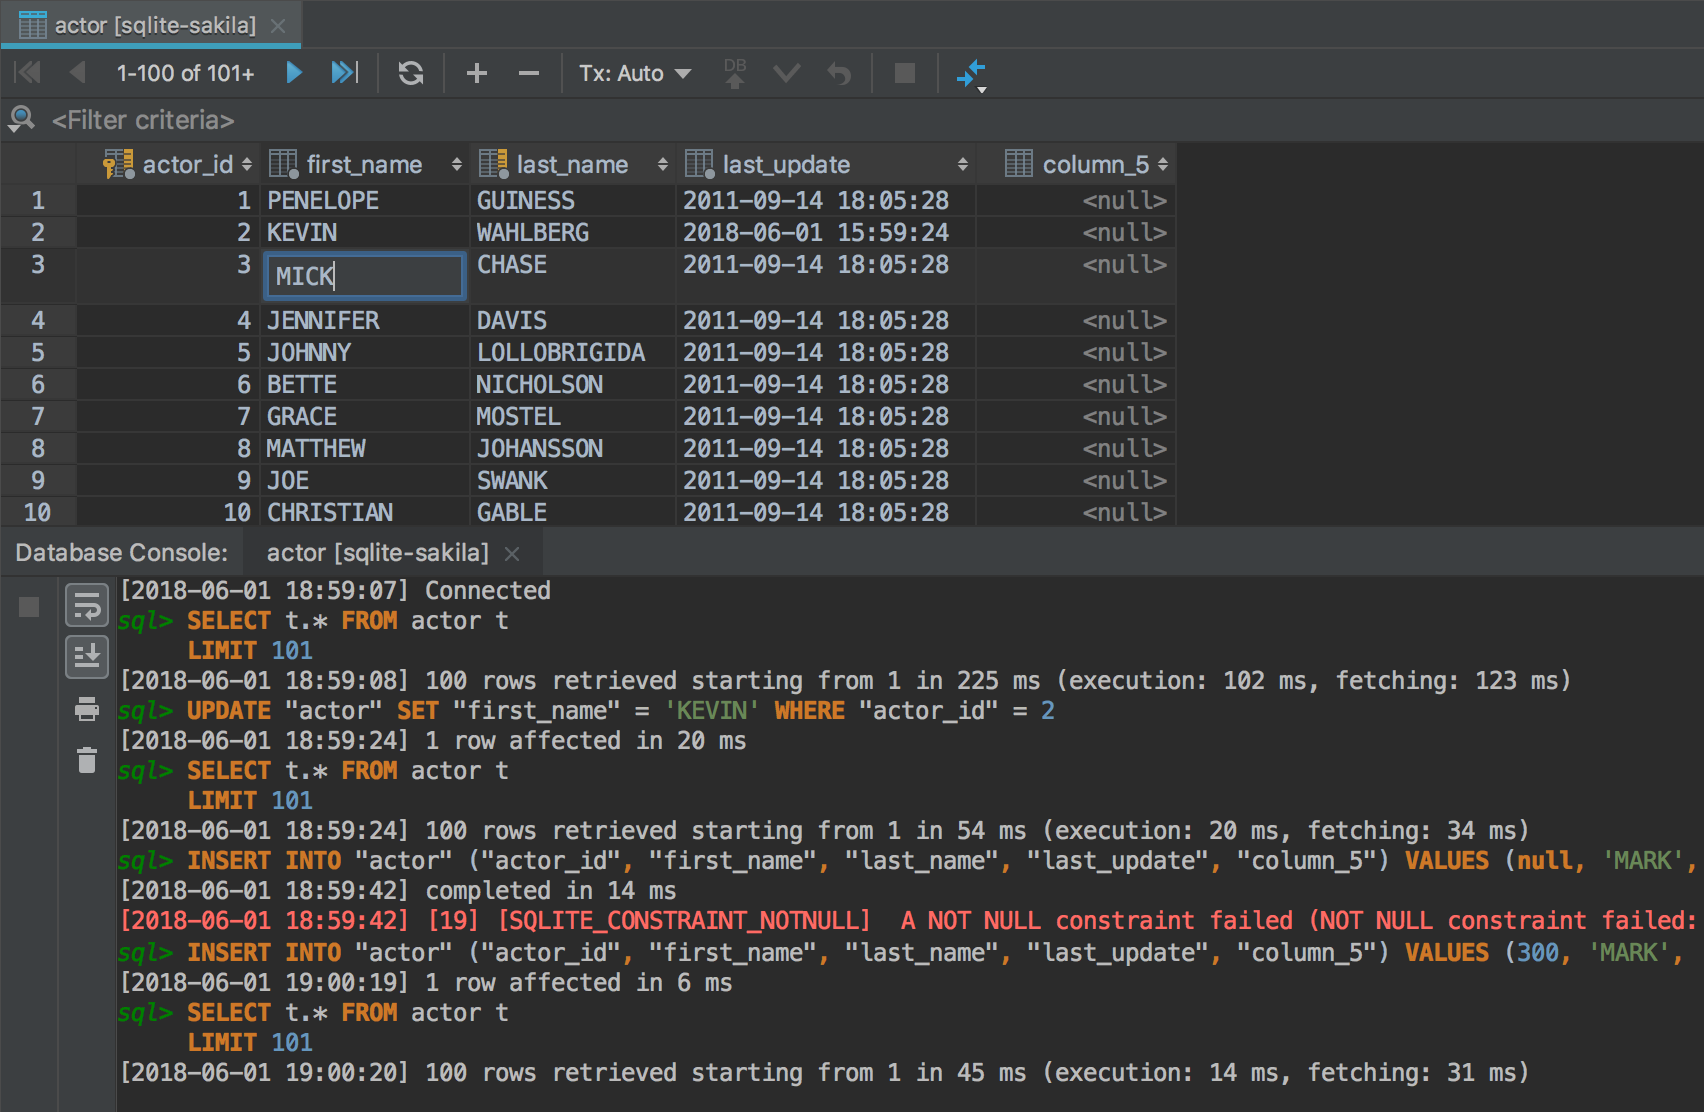 Data editor with text search & data filtering - Features